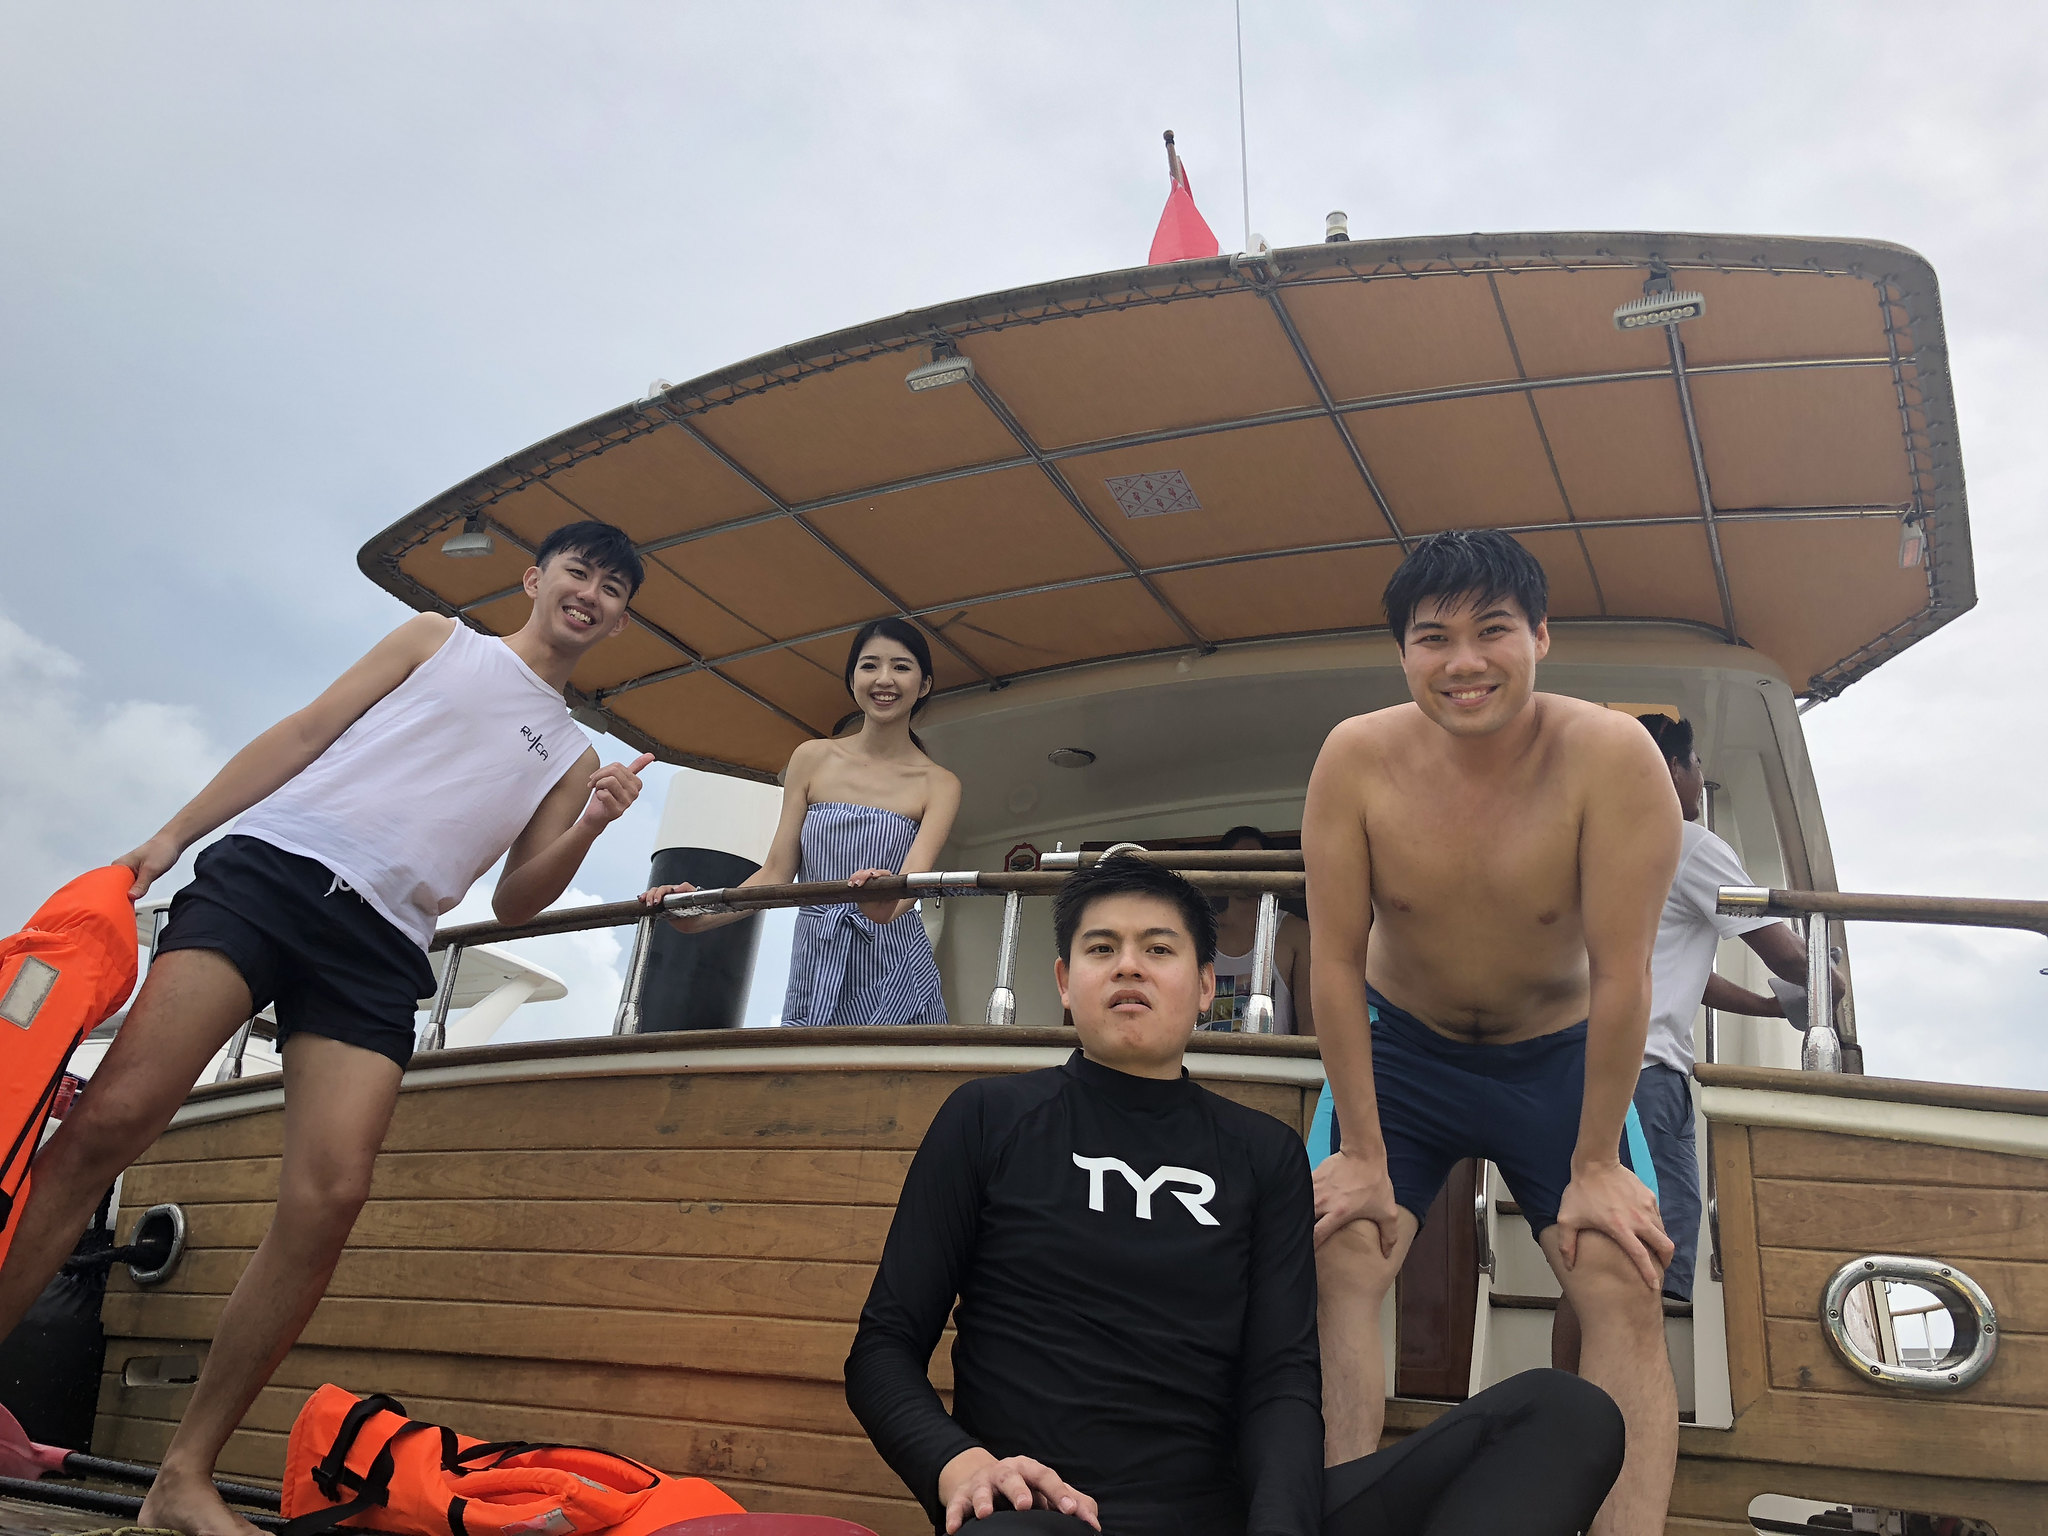 Happy friends on the Yacht while playing some water activities!